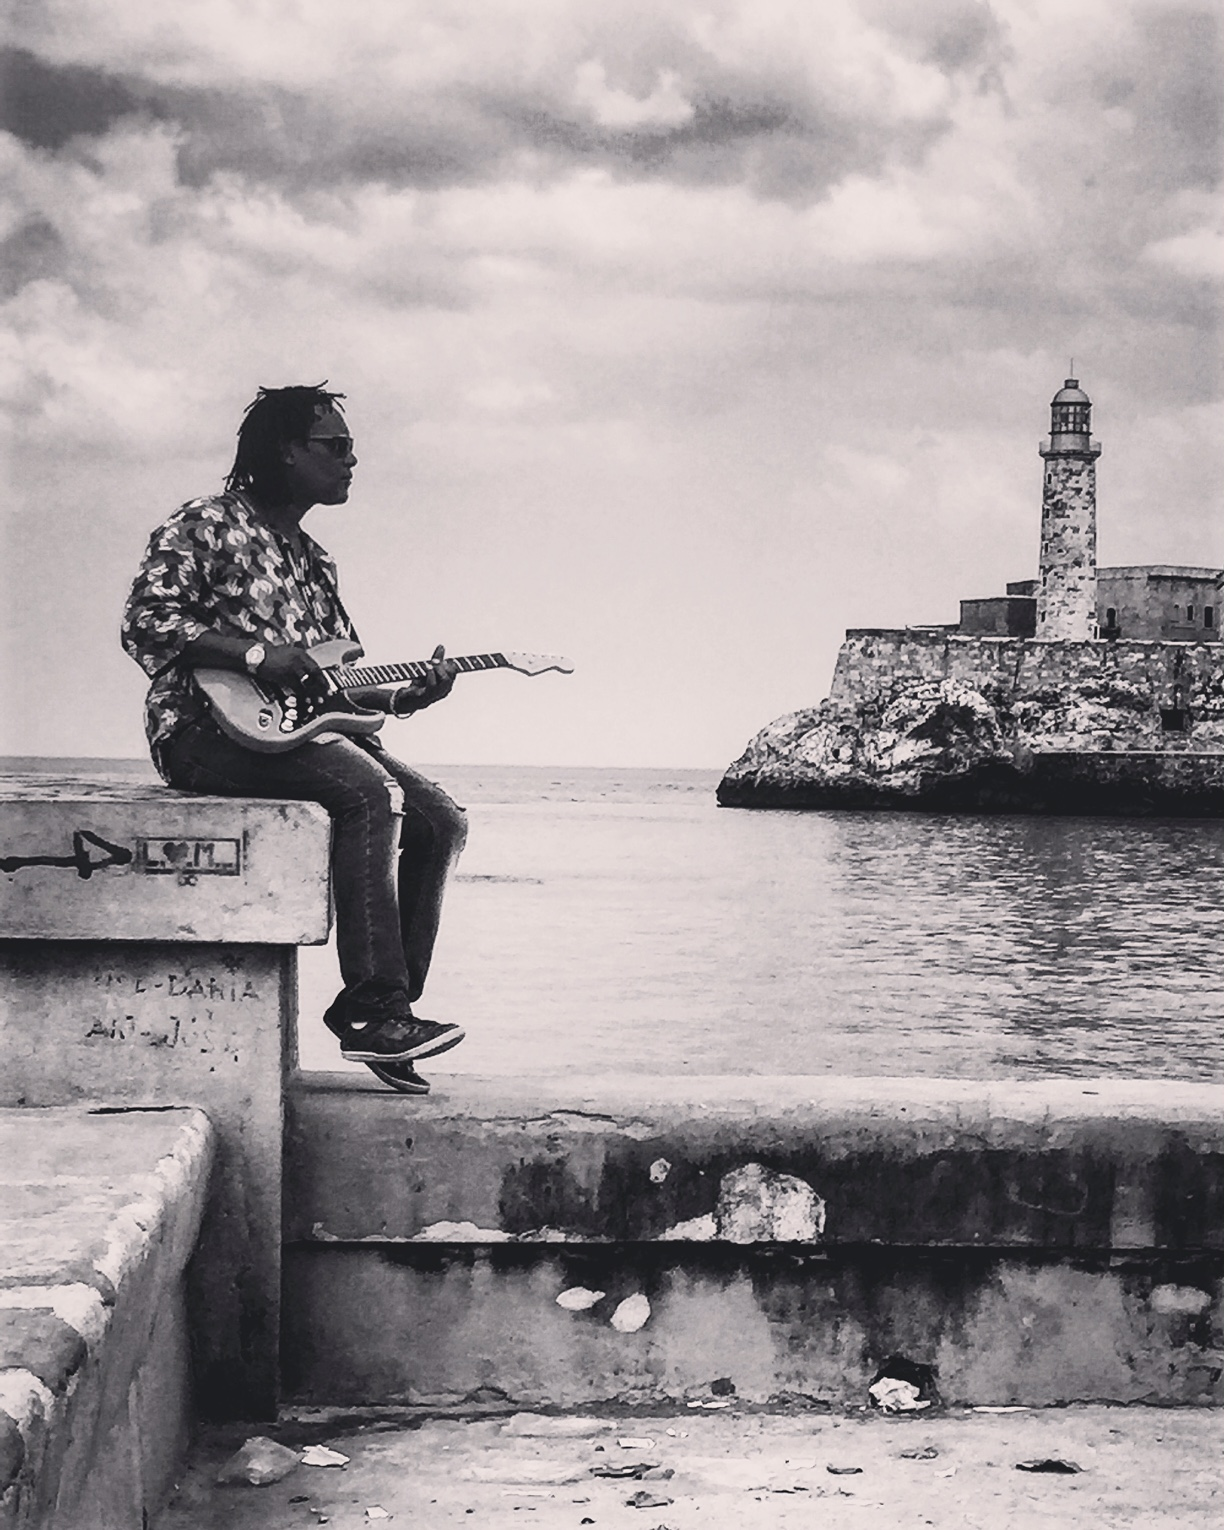 Guitariste sur la jetée Malecon digue nord La Havane Habana Cuba guitarist photo usofparis travel blog voyage amérique du nord